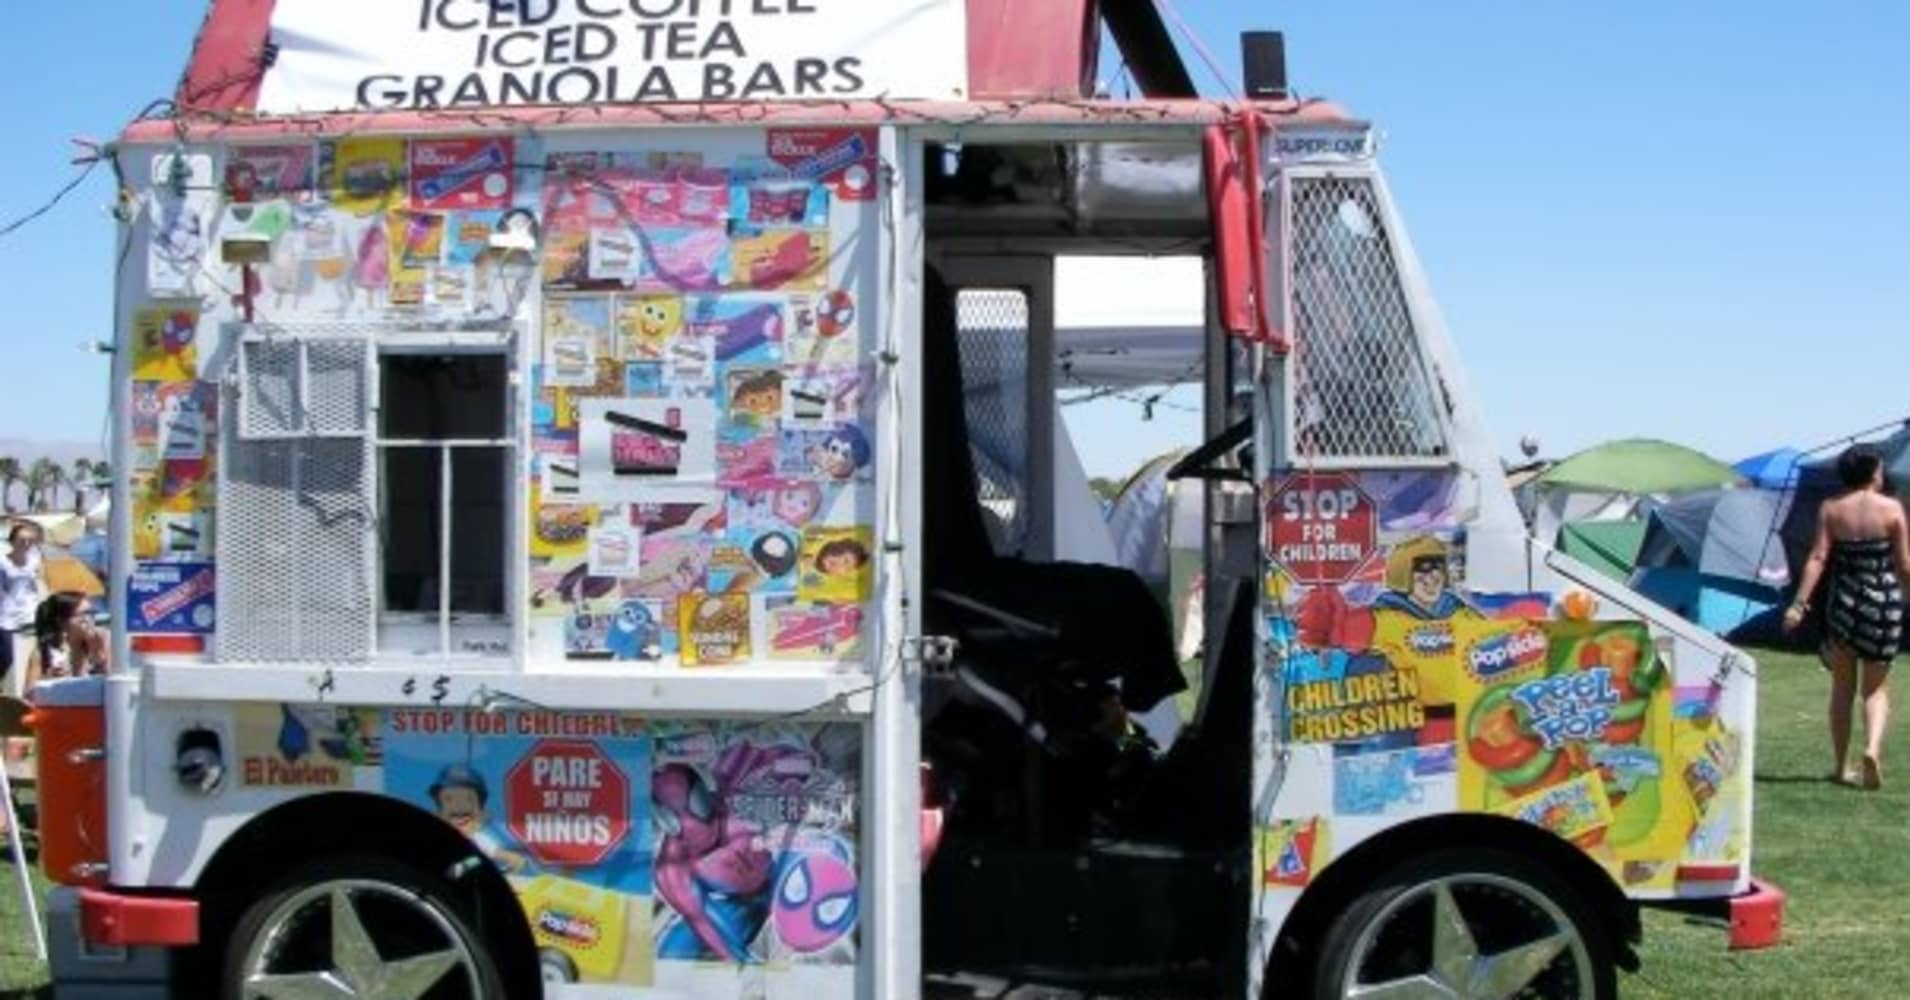 The first Coolhaus food truck at the music festival Coachella.